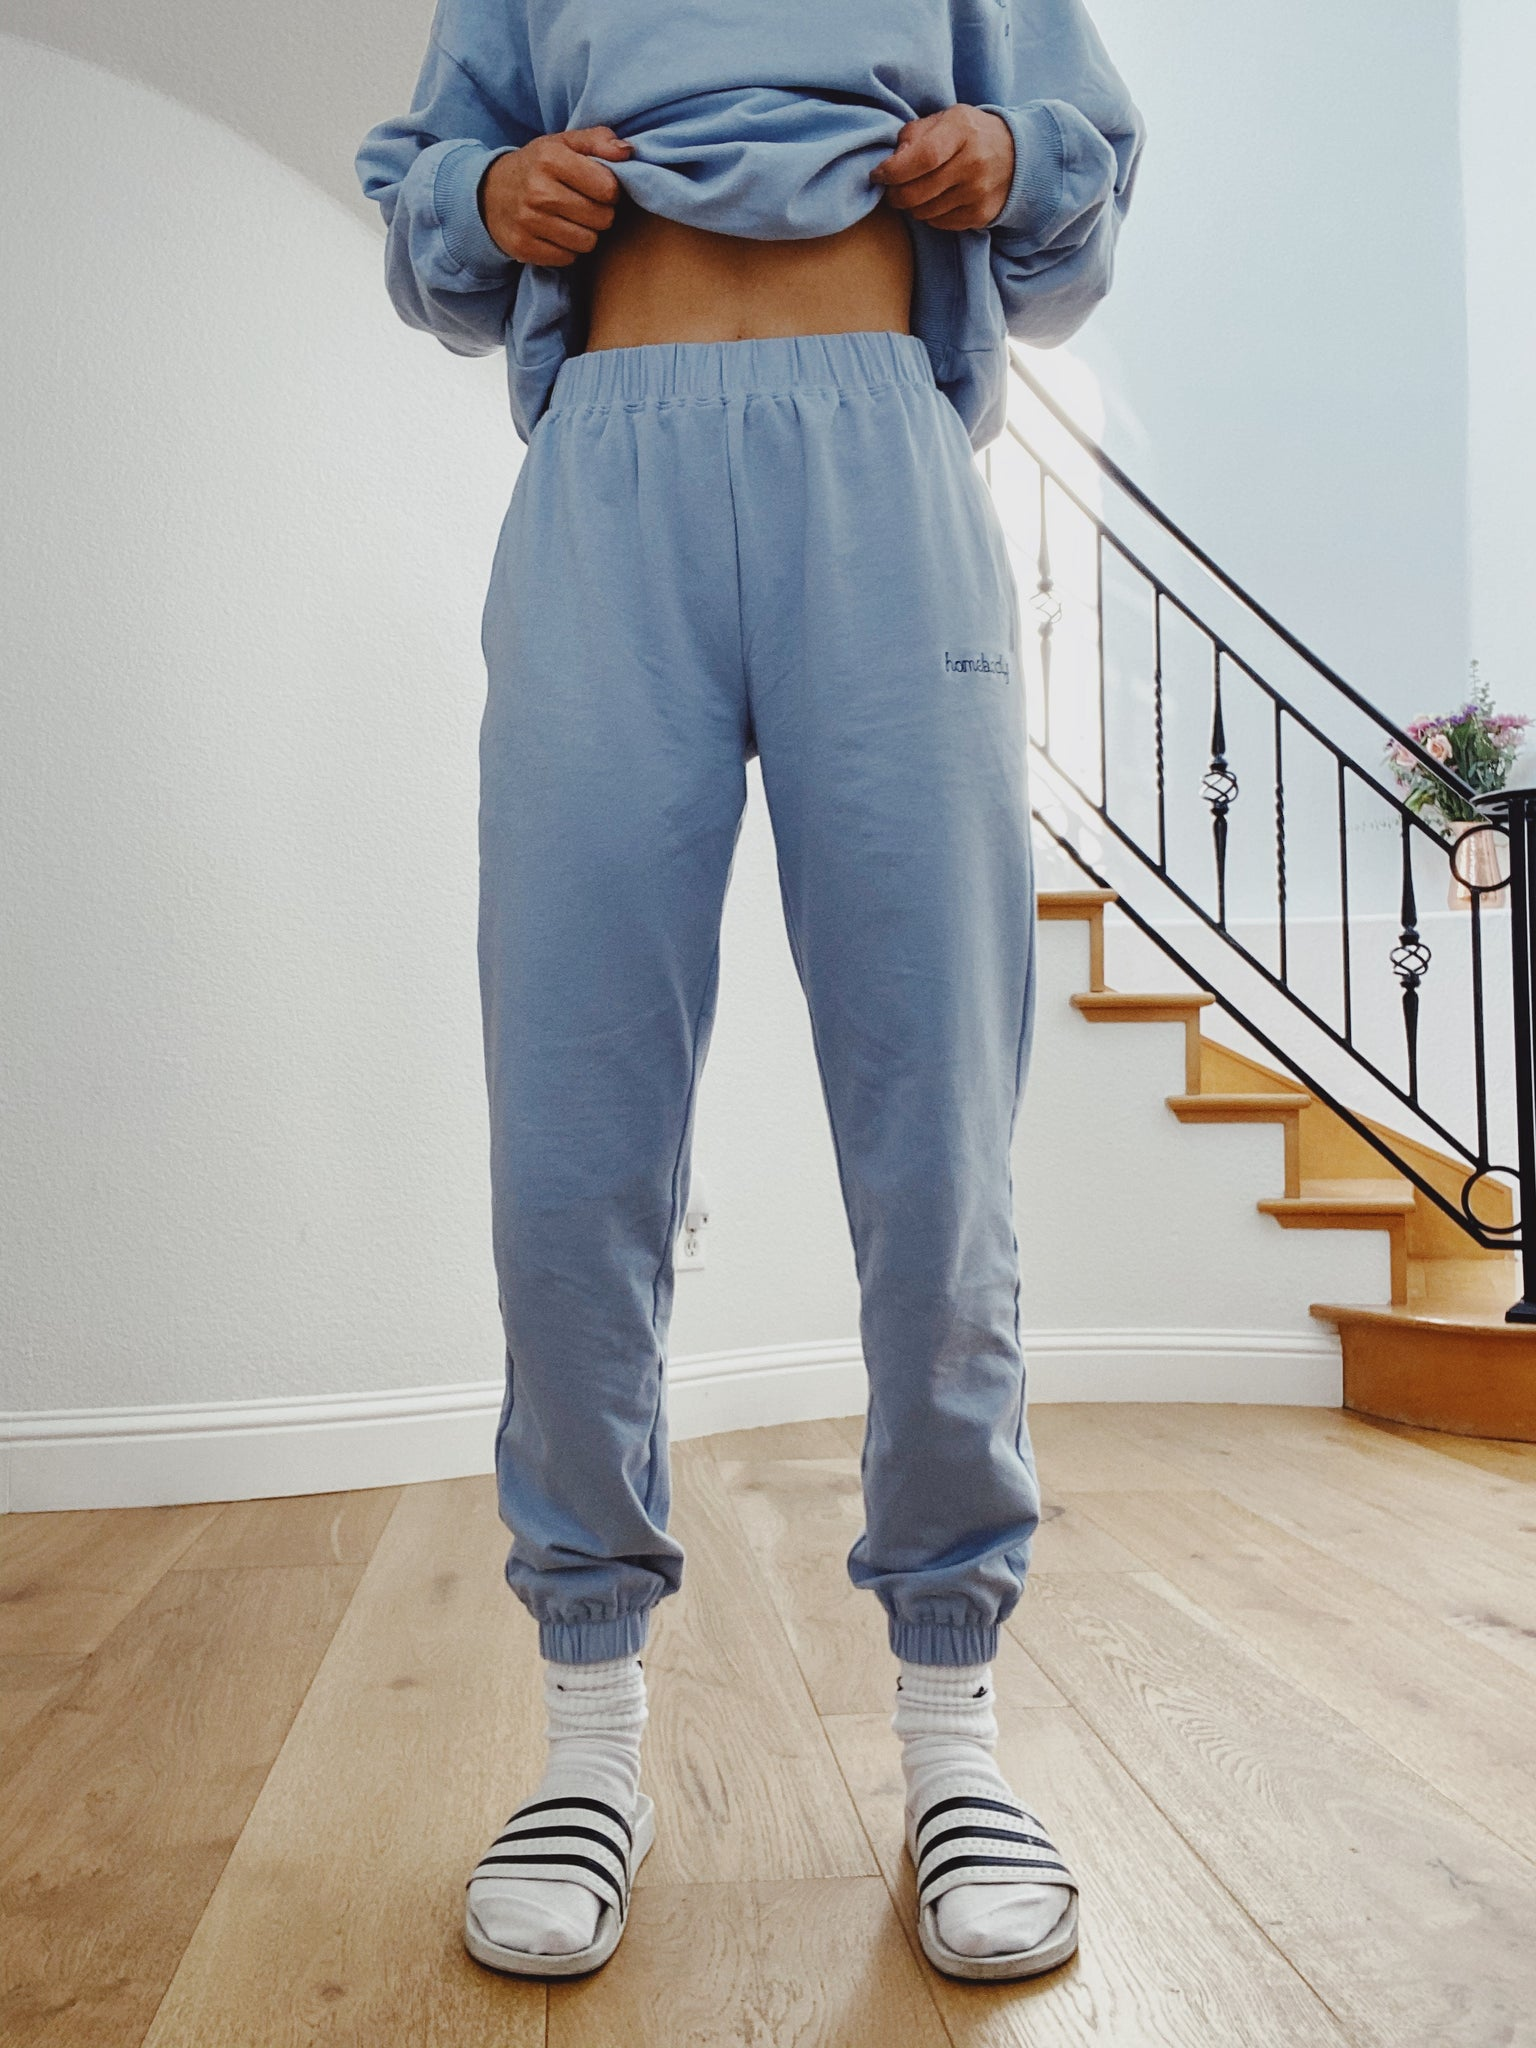 'Homebody' Sweatpants